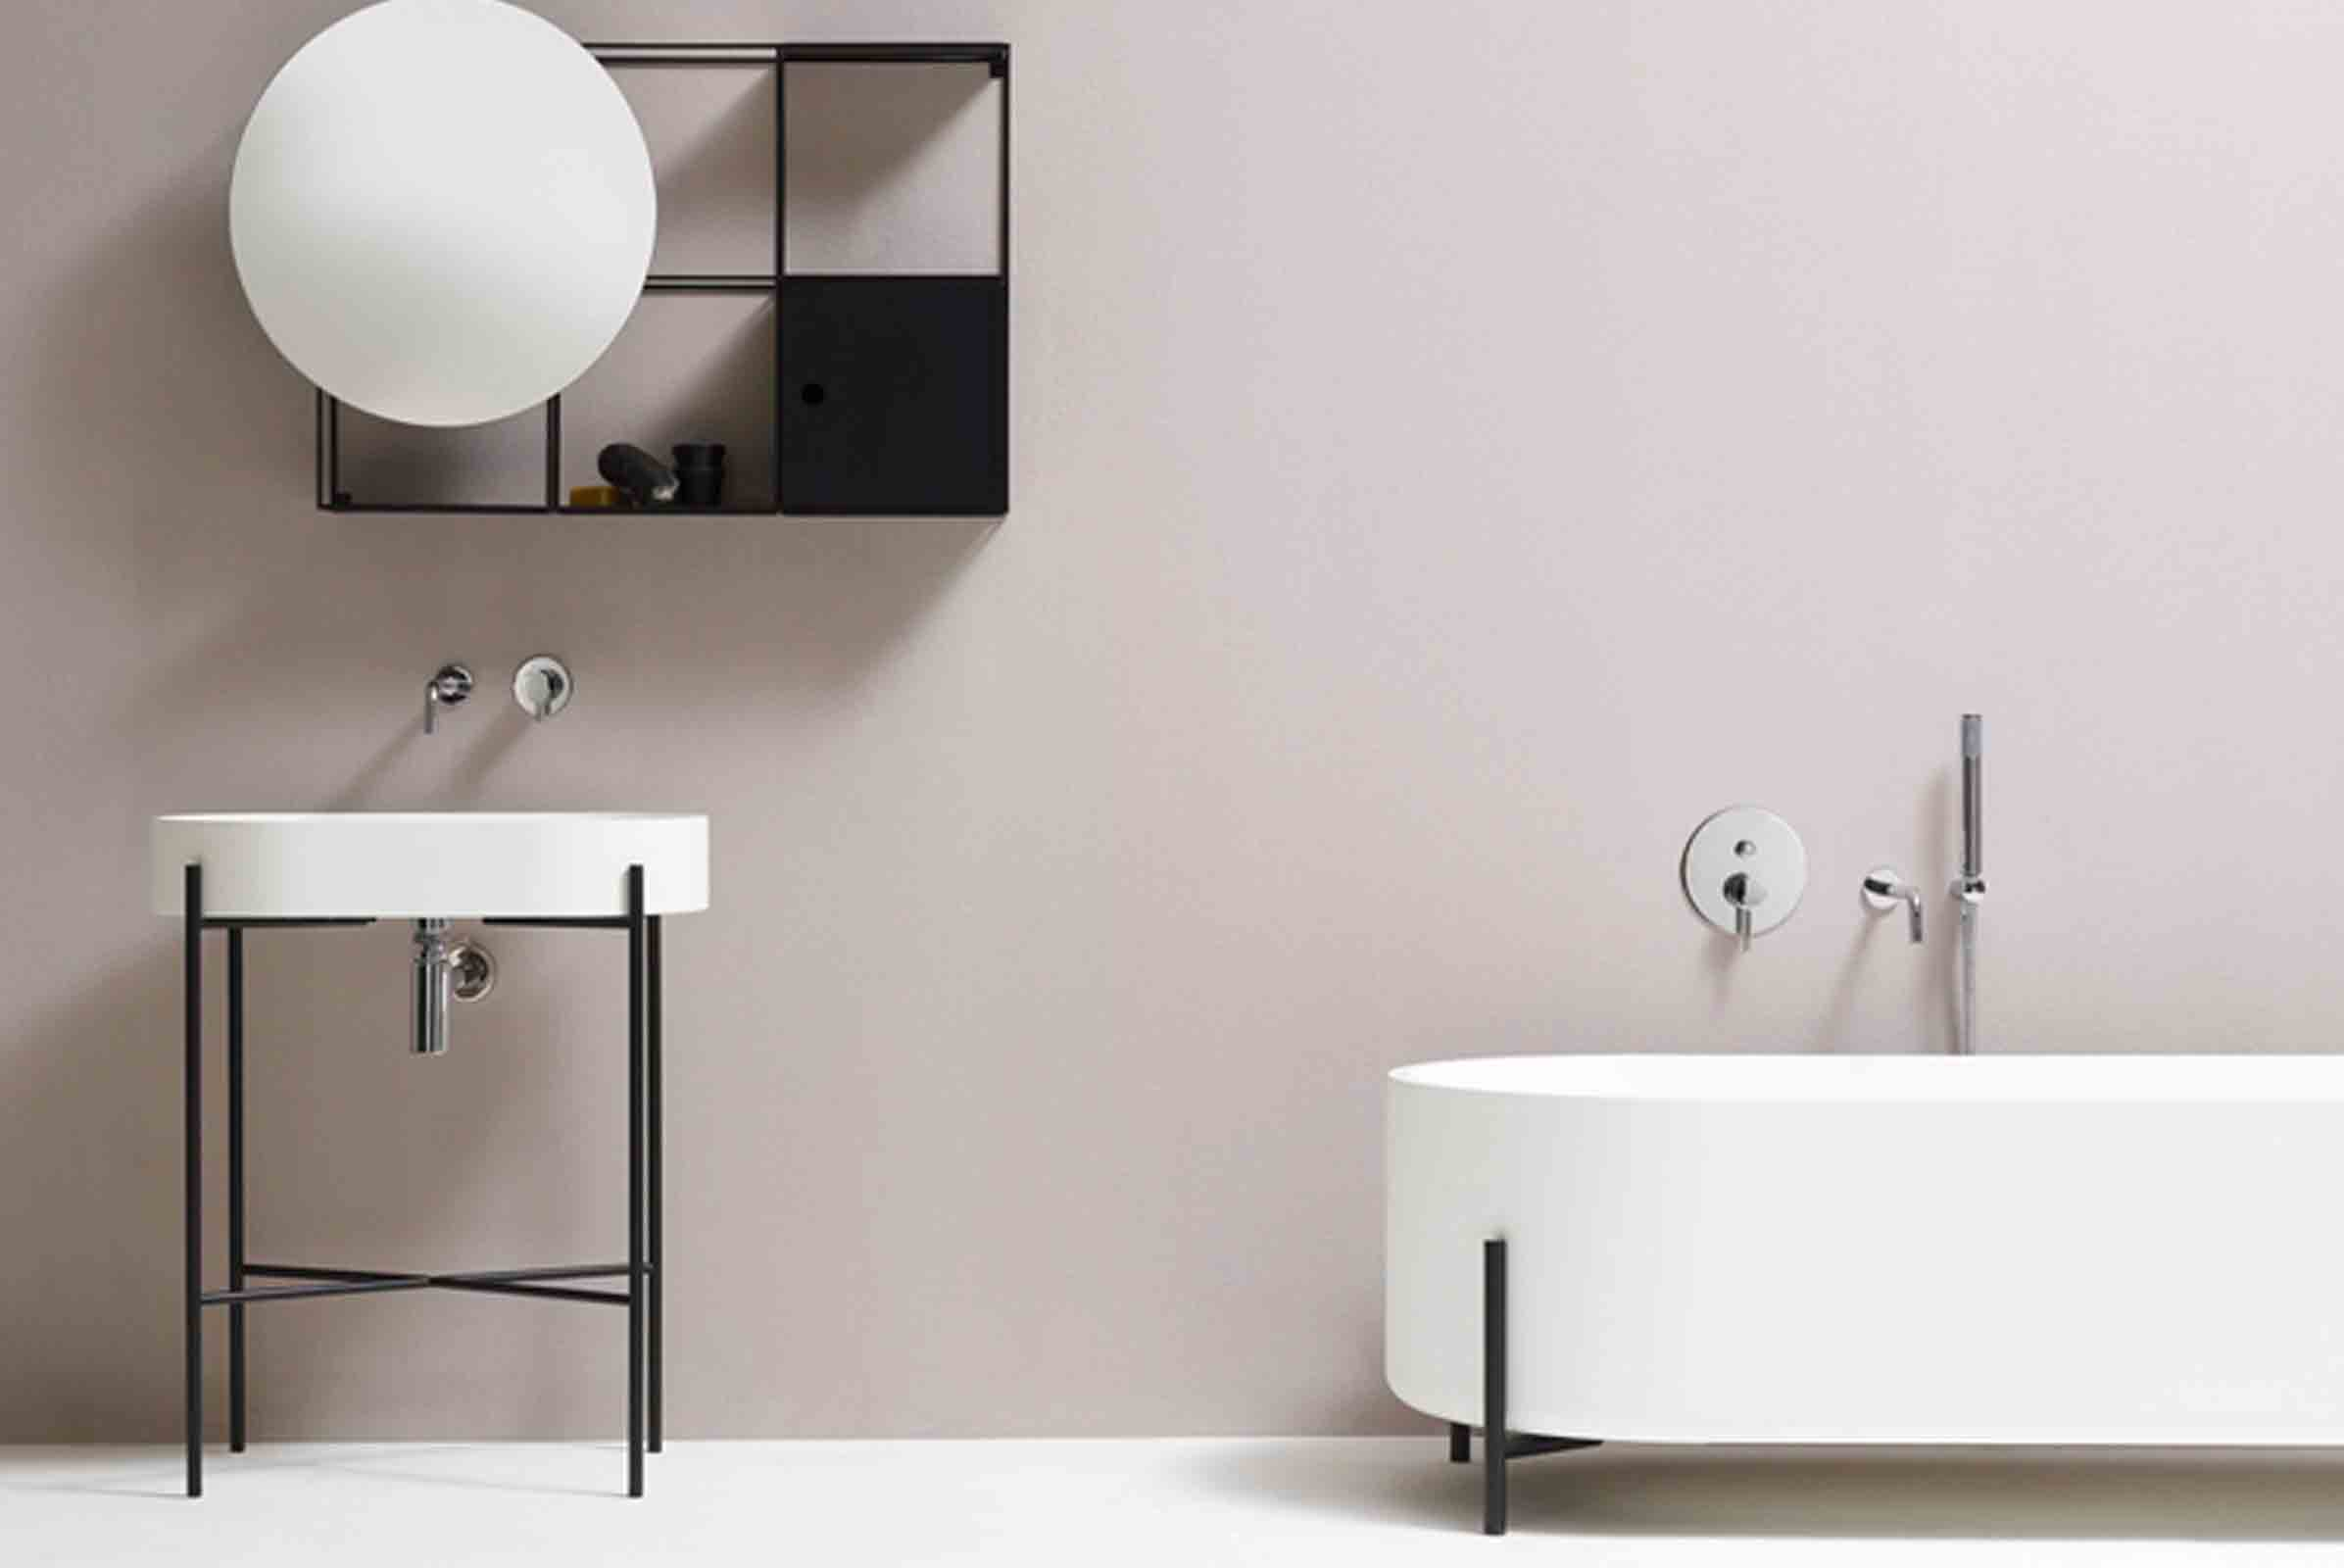 The new collection of bathroom furniture by norm architects for ex.t